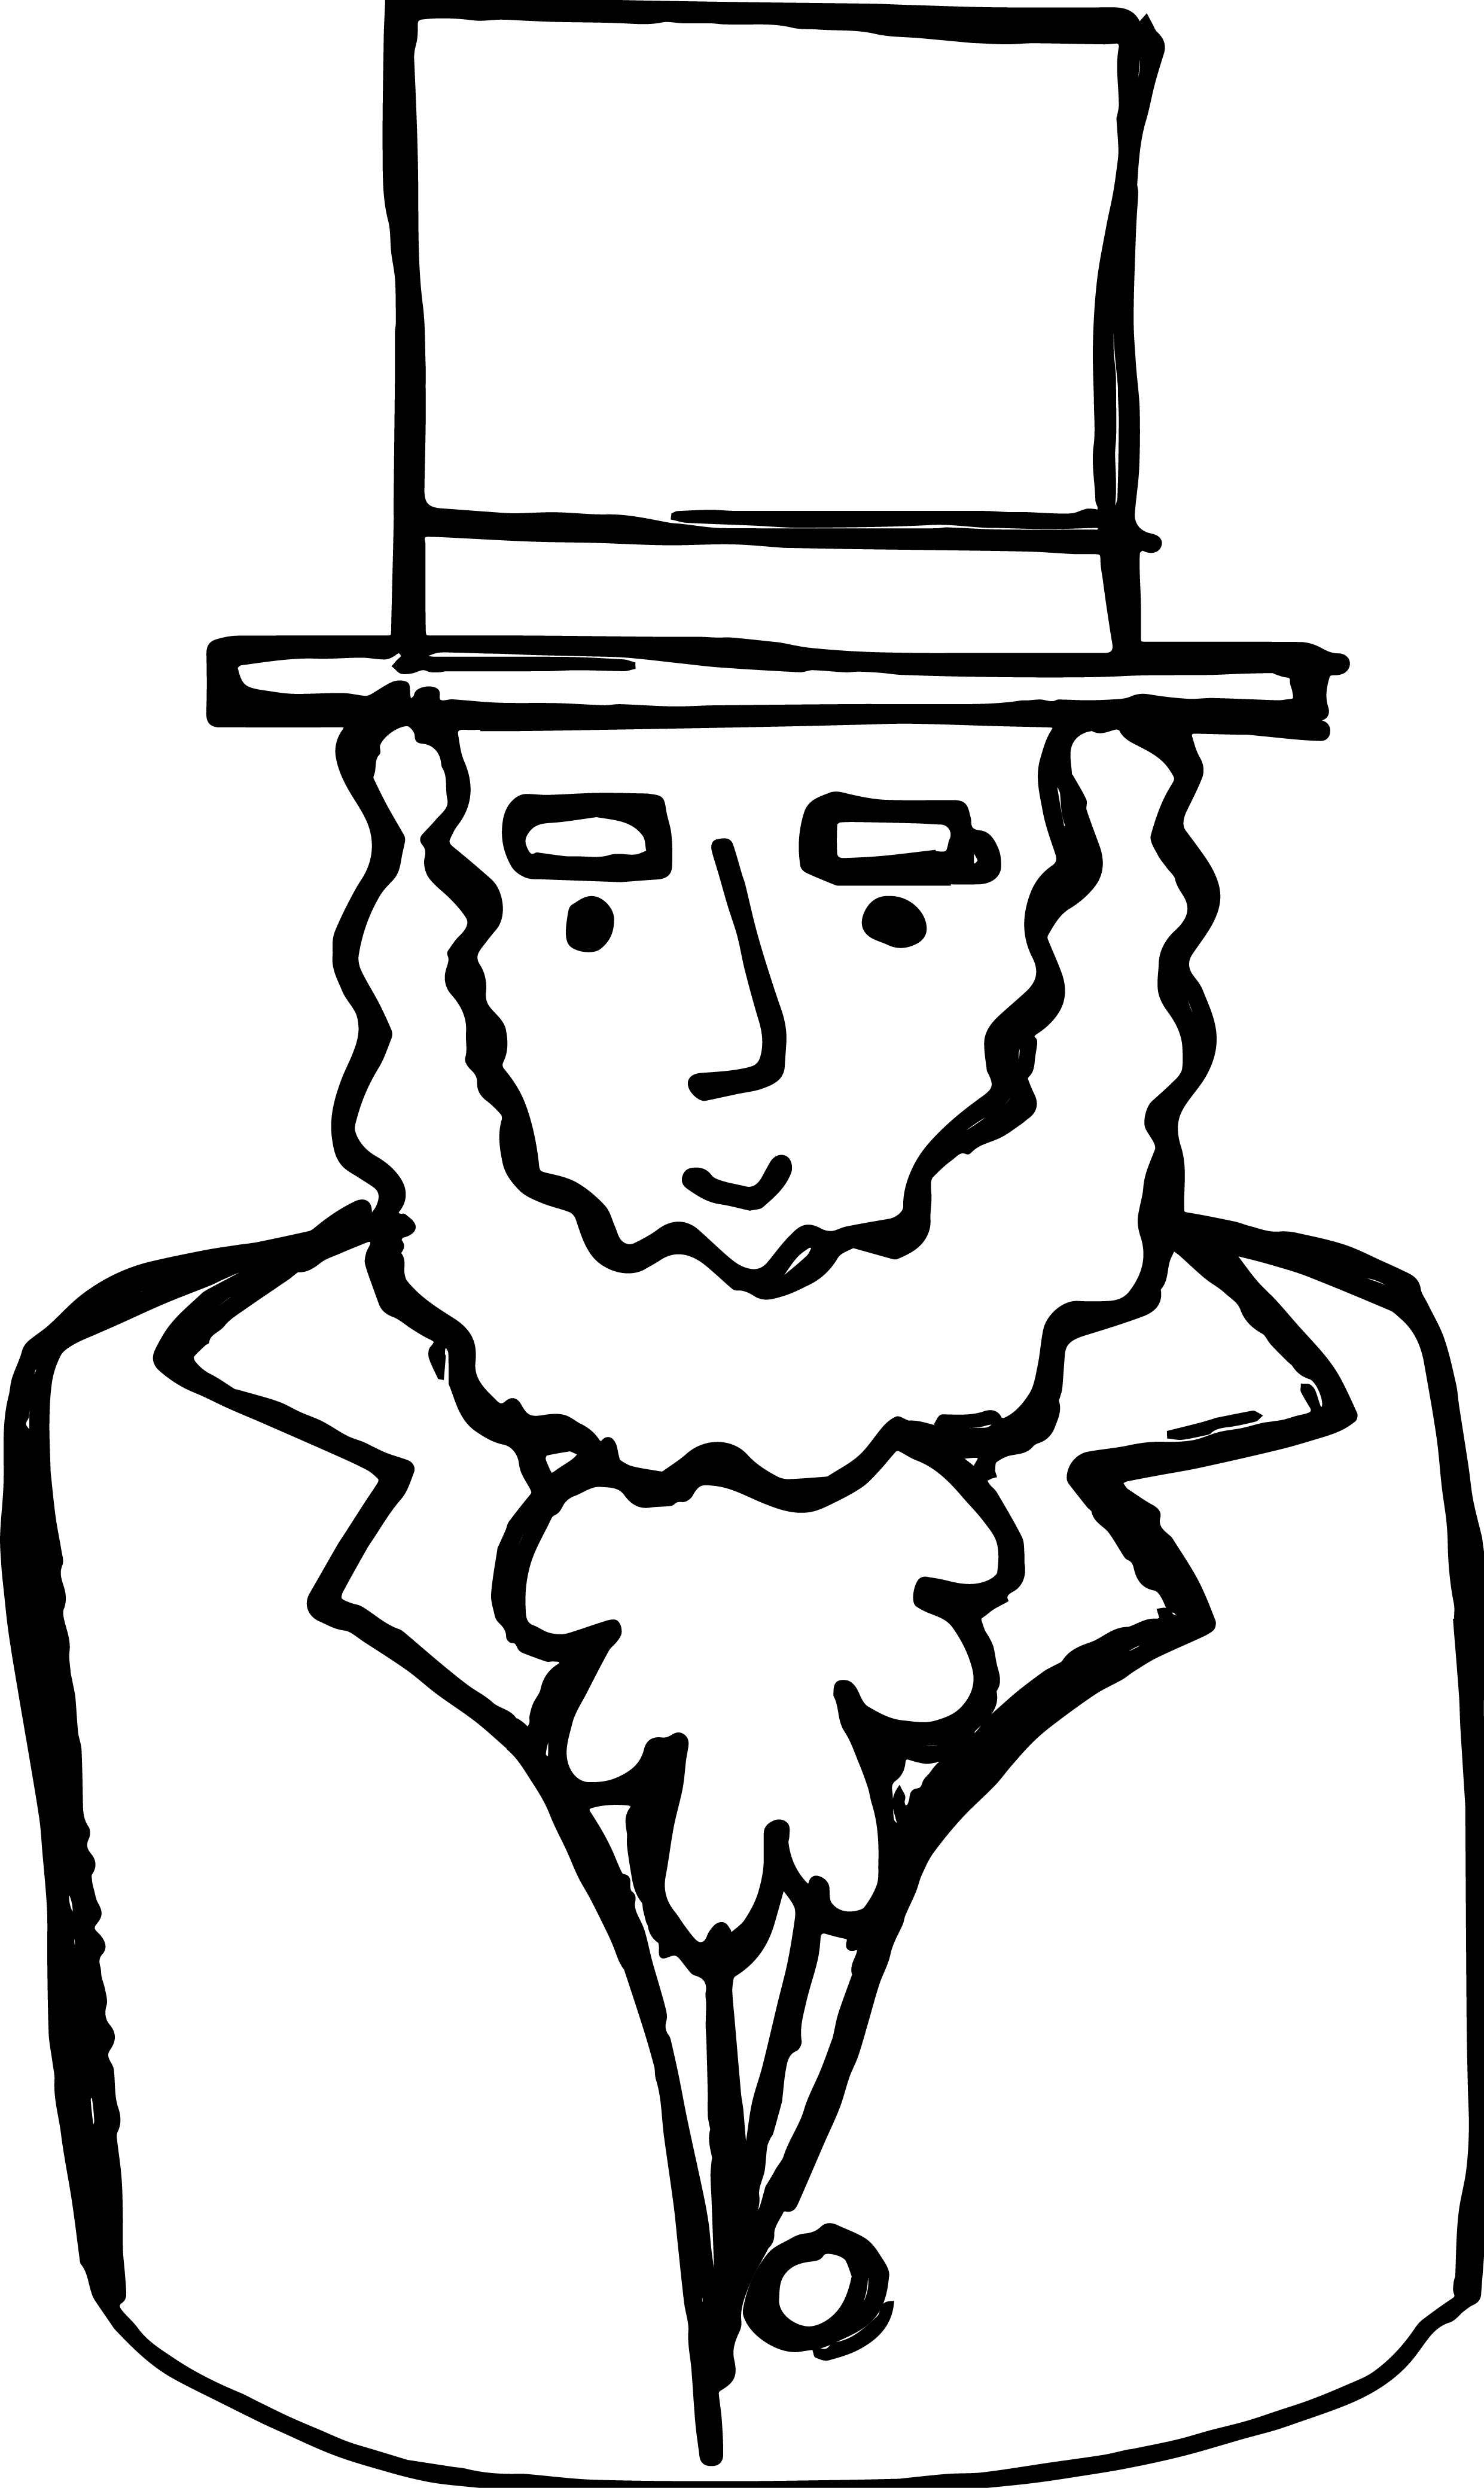 abraham lincoln coloring page - abraham lincoln president coloring page